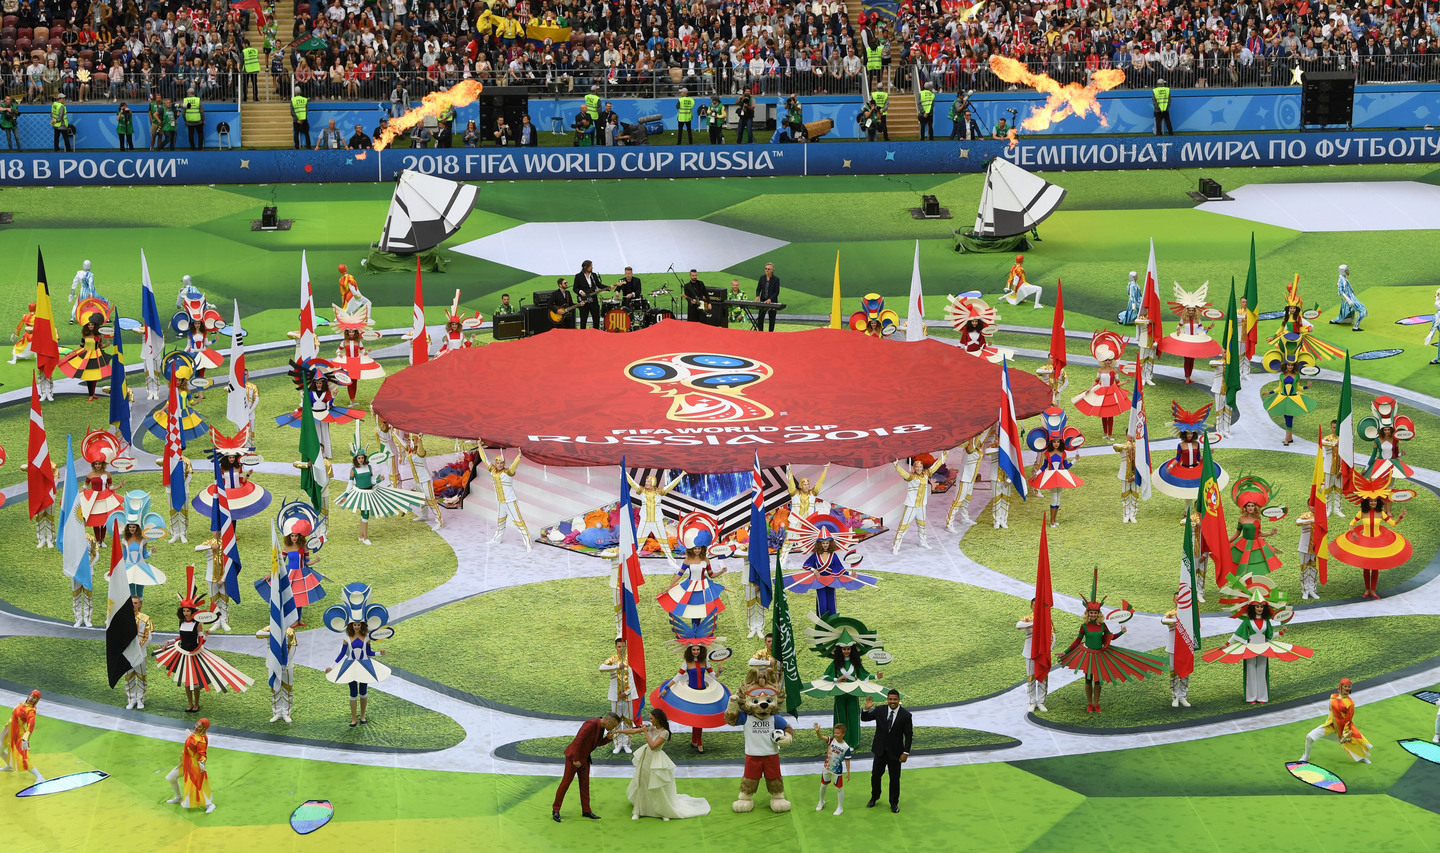 2018 FIFA World Cup Opening Ceremony 74